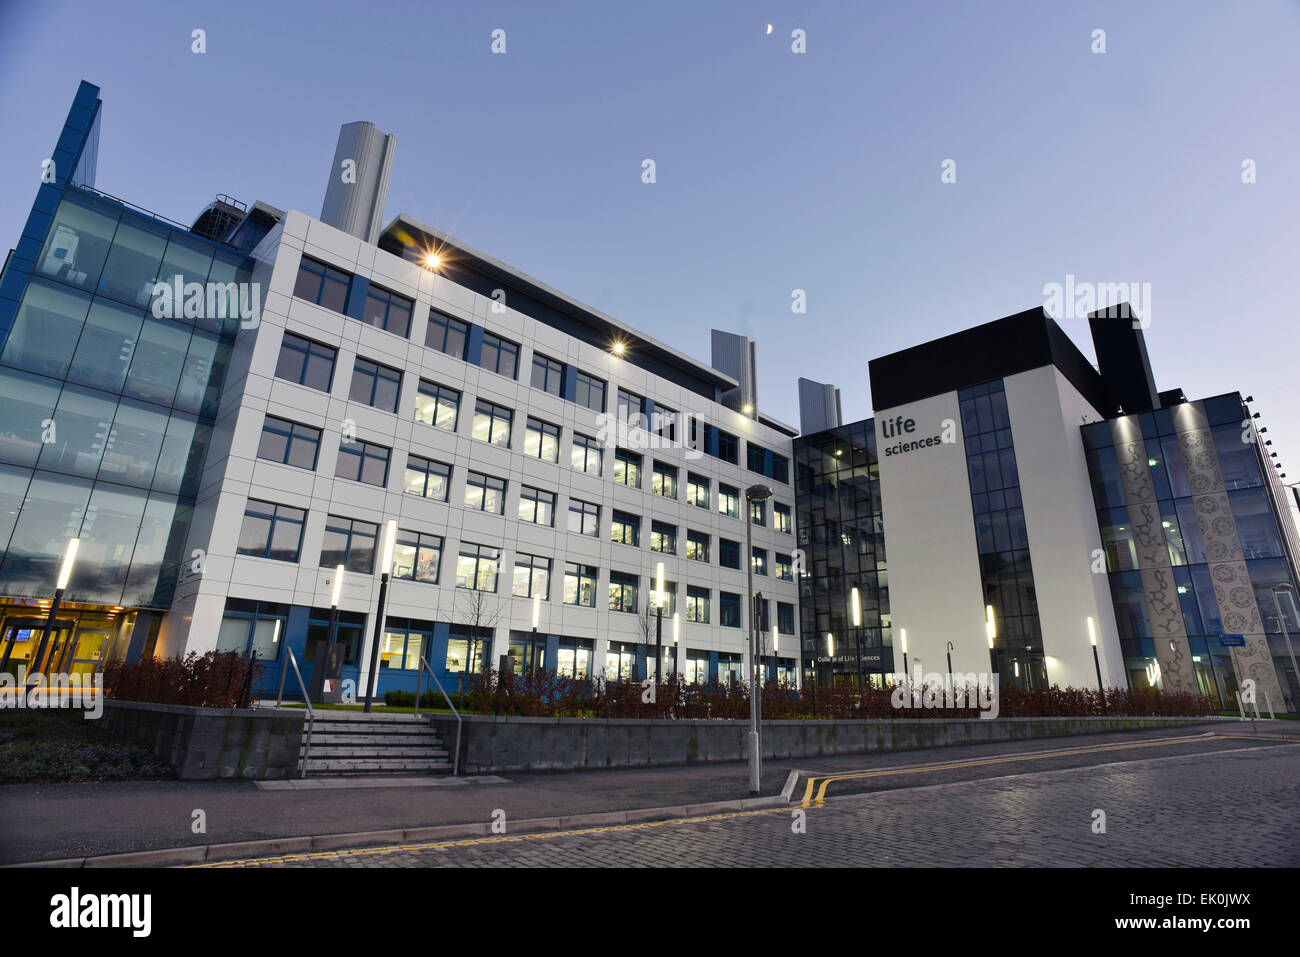 Dundee University School of Life Sciences, Discovery Centre for Translational and Interdisciplinary Research Dundee - Stock Image